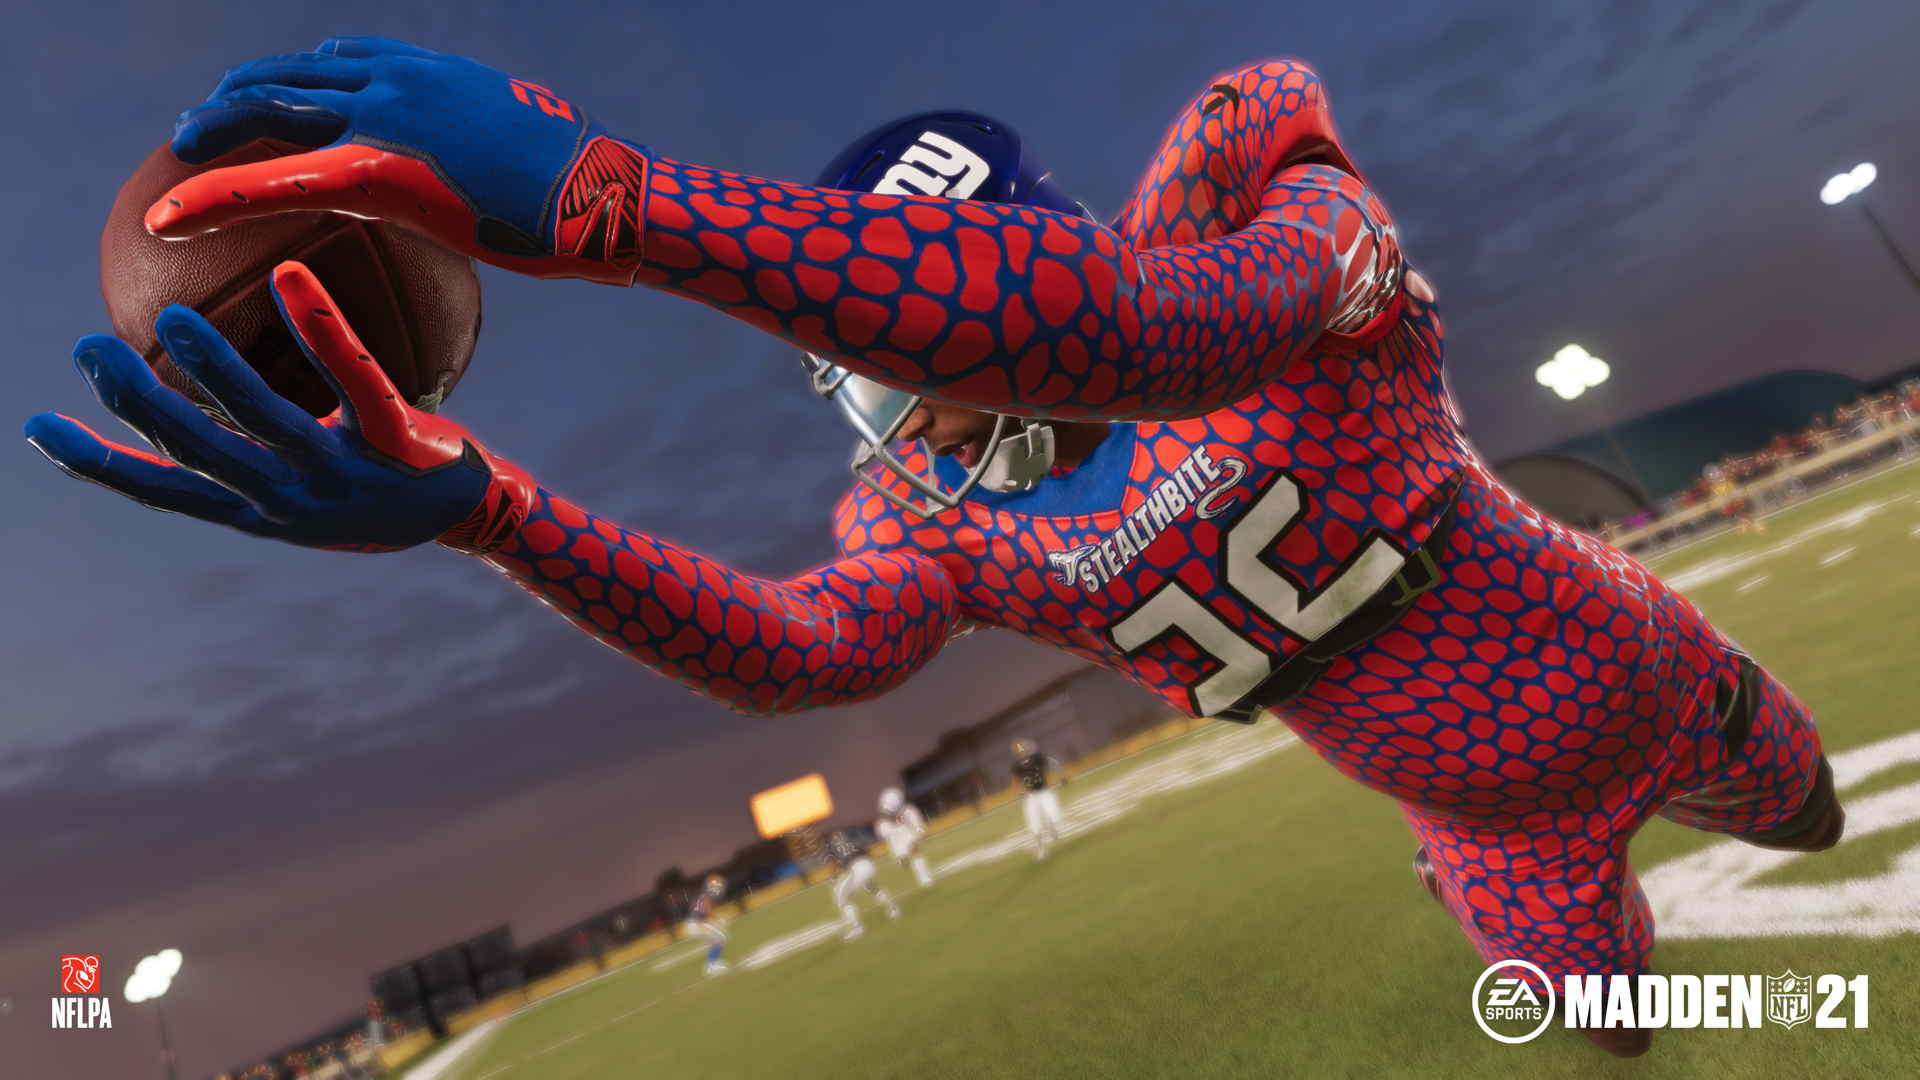 Giants running back Saquon Barkley, in a wild orange-and-blue snakeskin uniform, makes a diving grab in Madden NFL 21's The Yard